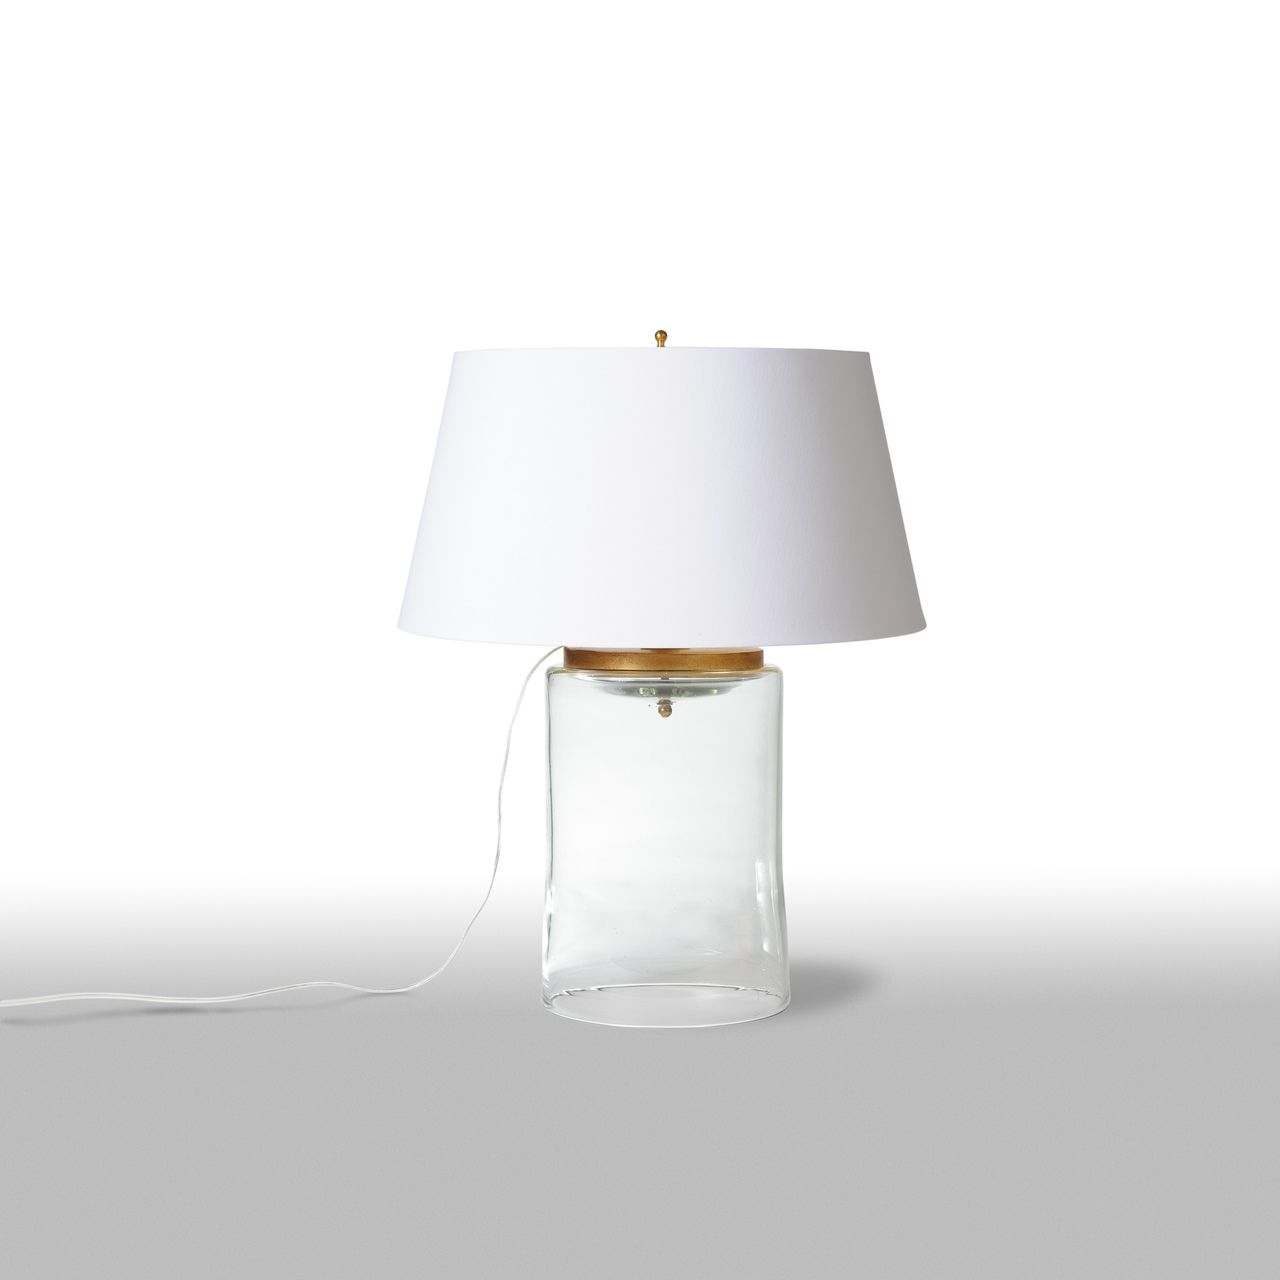 our barbara cosgrove chunky glass cylinder clear table lamp has nautical accent lamps vibe with its brass toned accents this dramatic french wired marble tulip side monarch hall